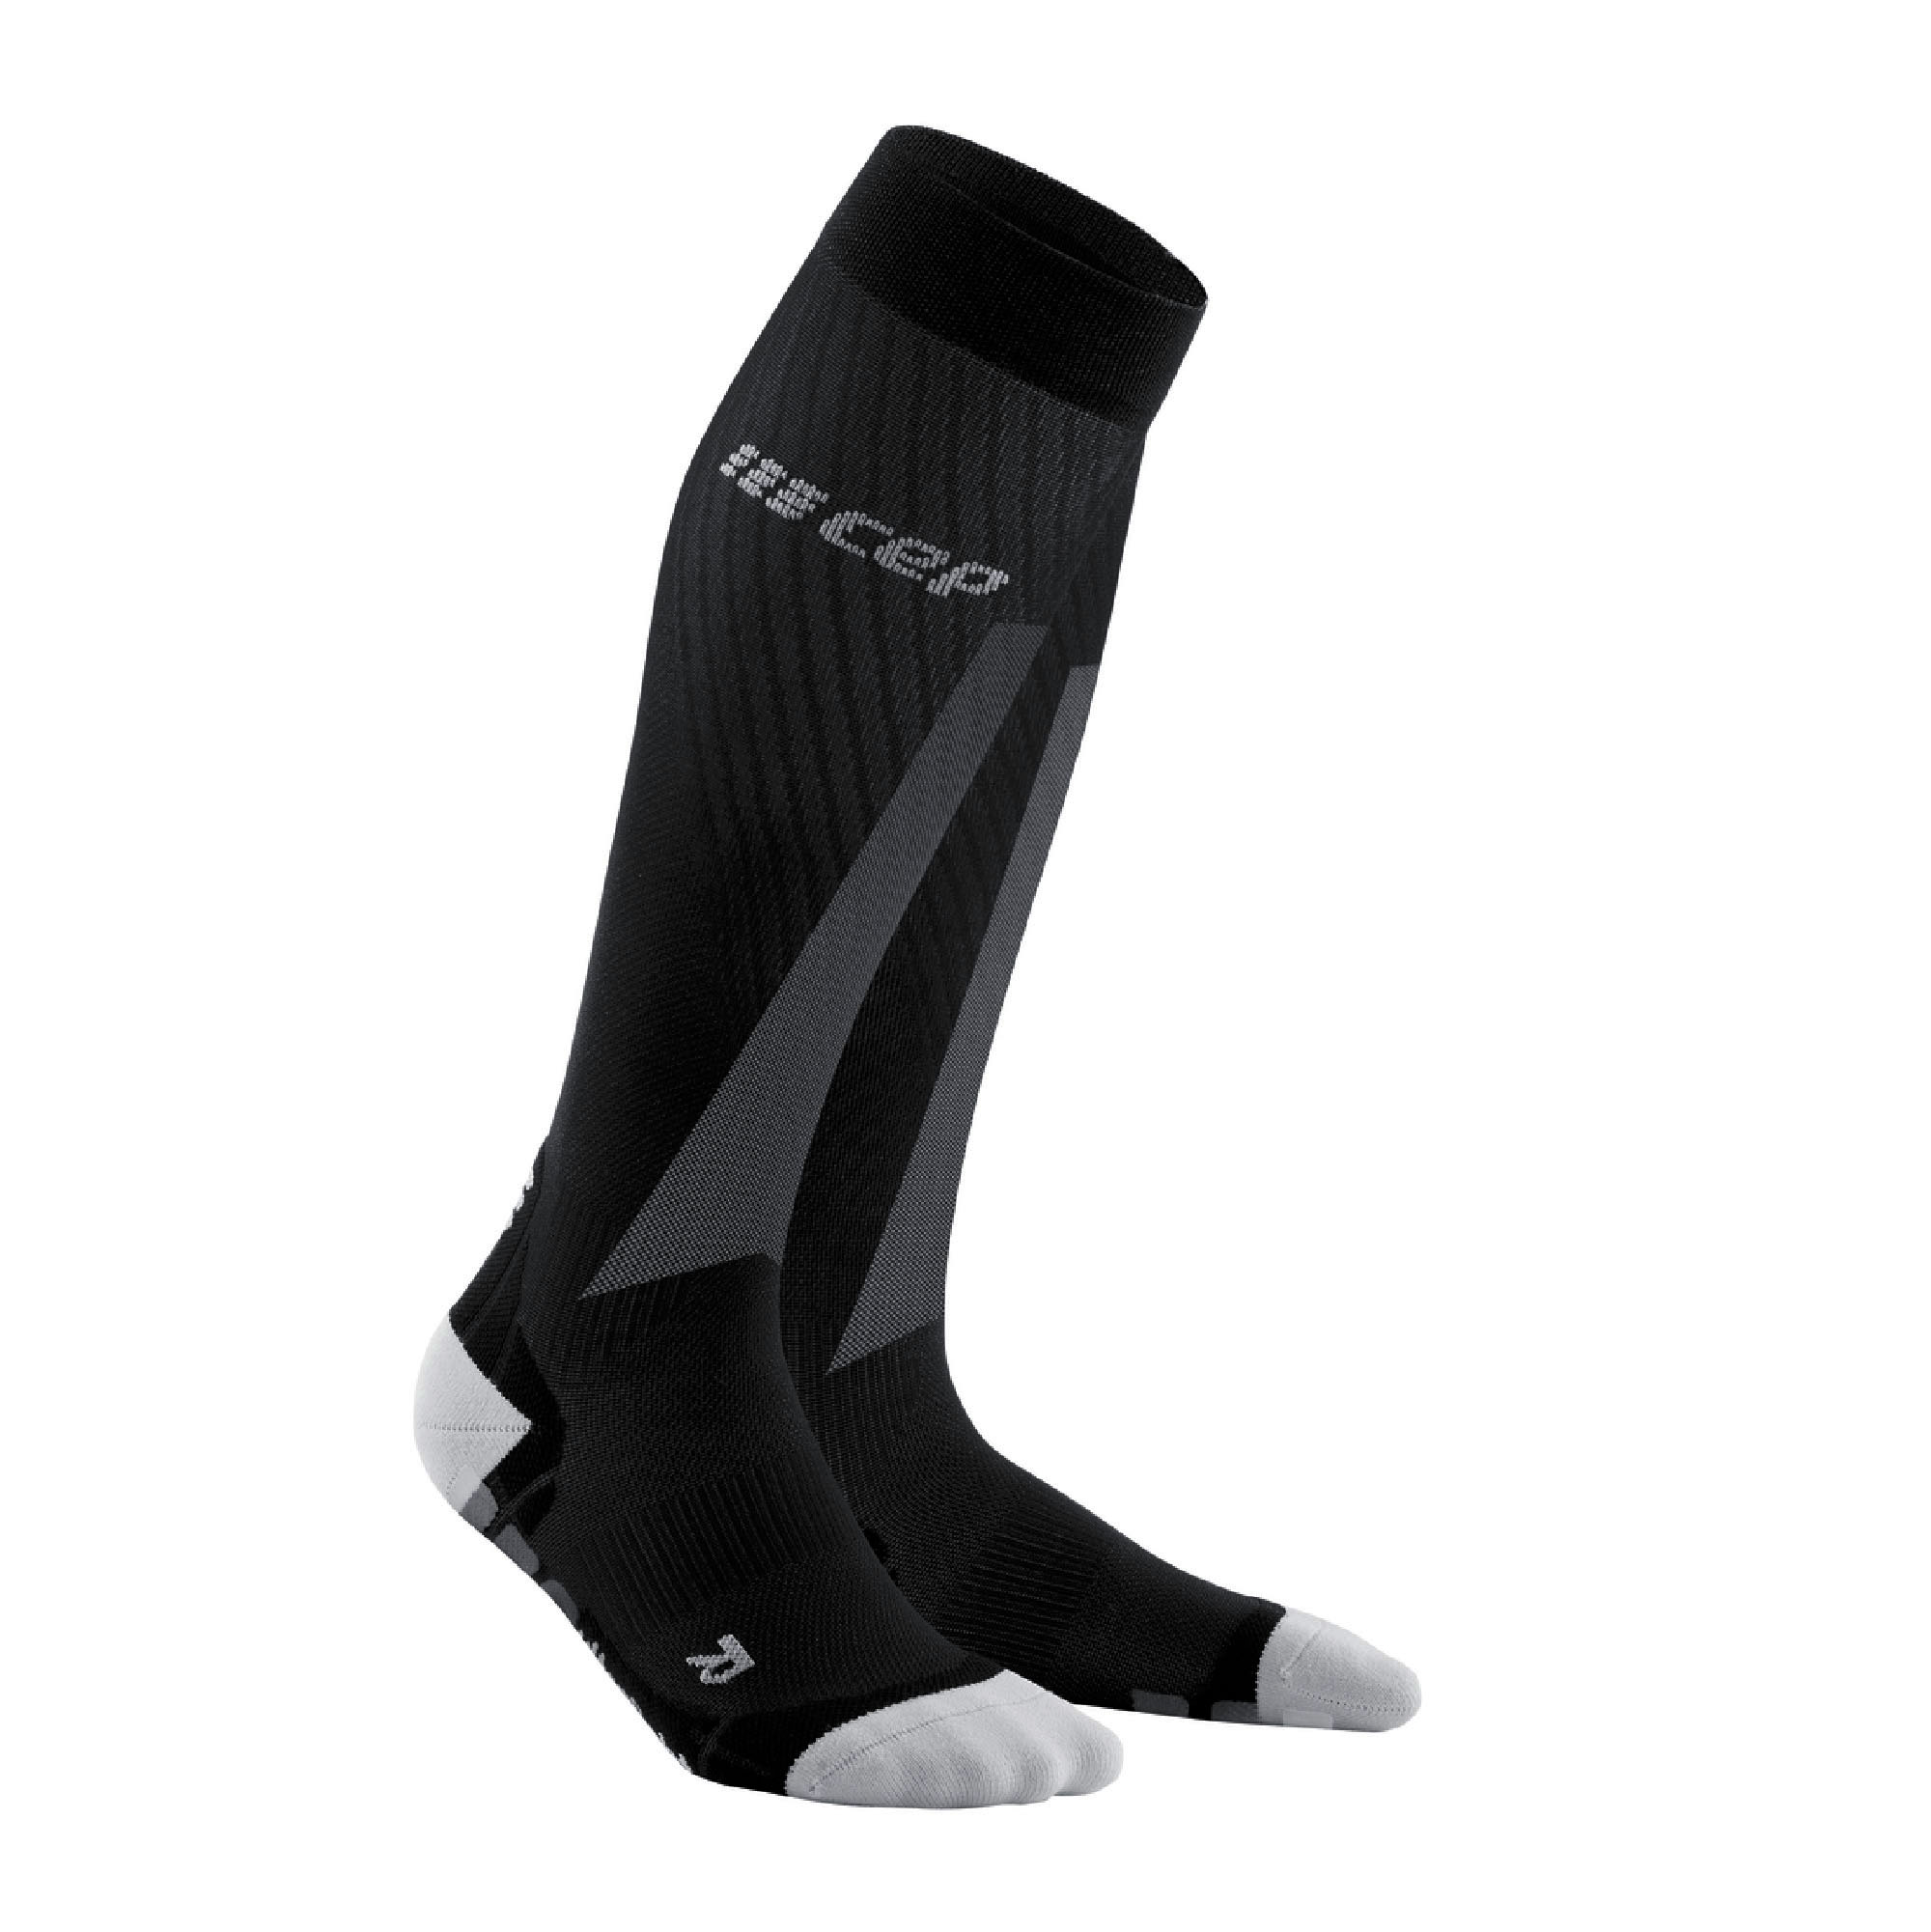 ULTRALIGHT PRO SOCKS | MEN